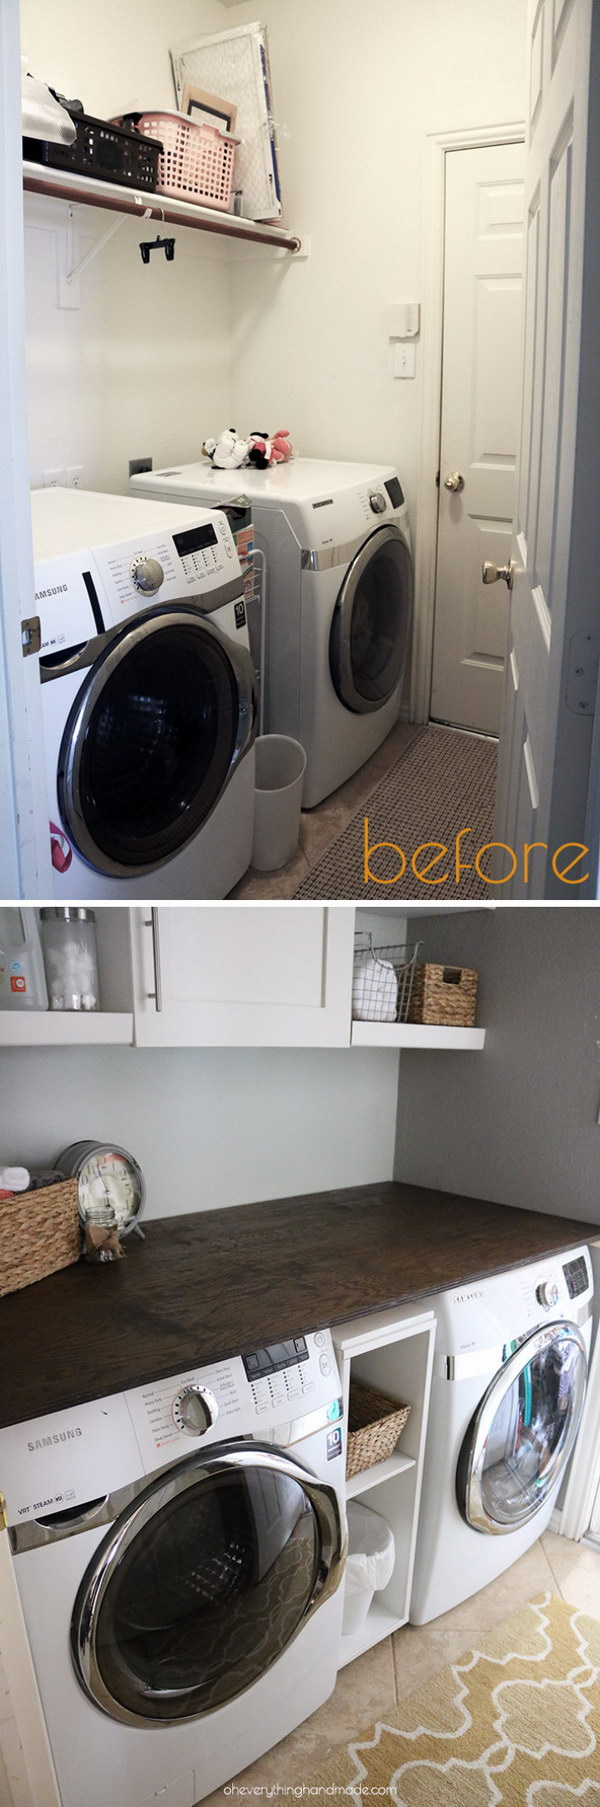 Laundry Room Makeover: Adding a DIY Wooden Counter and Wall Cabinet.